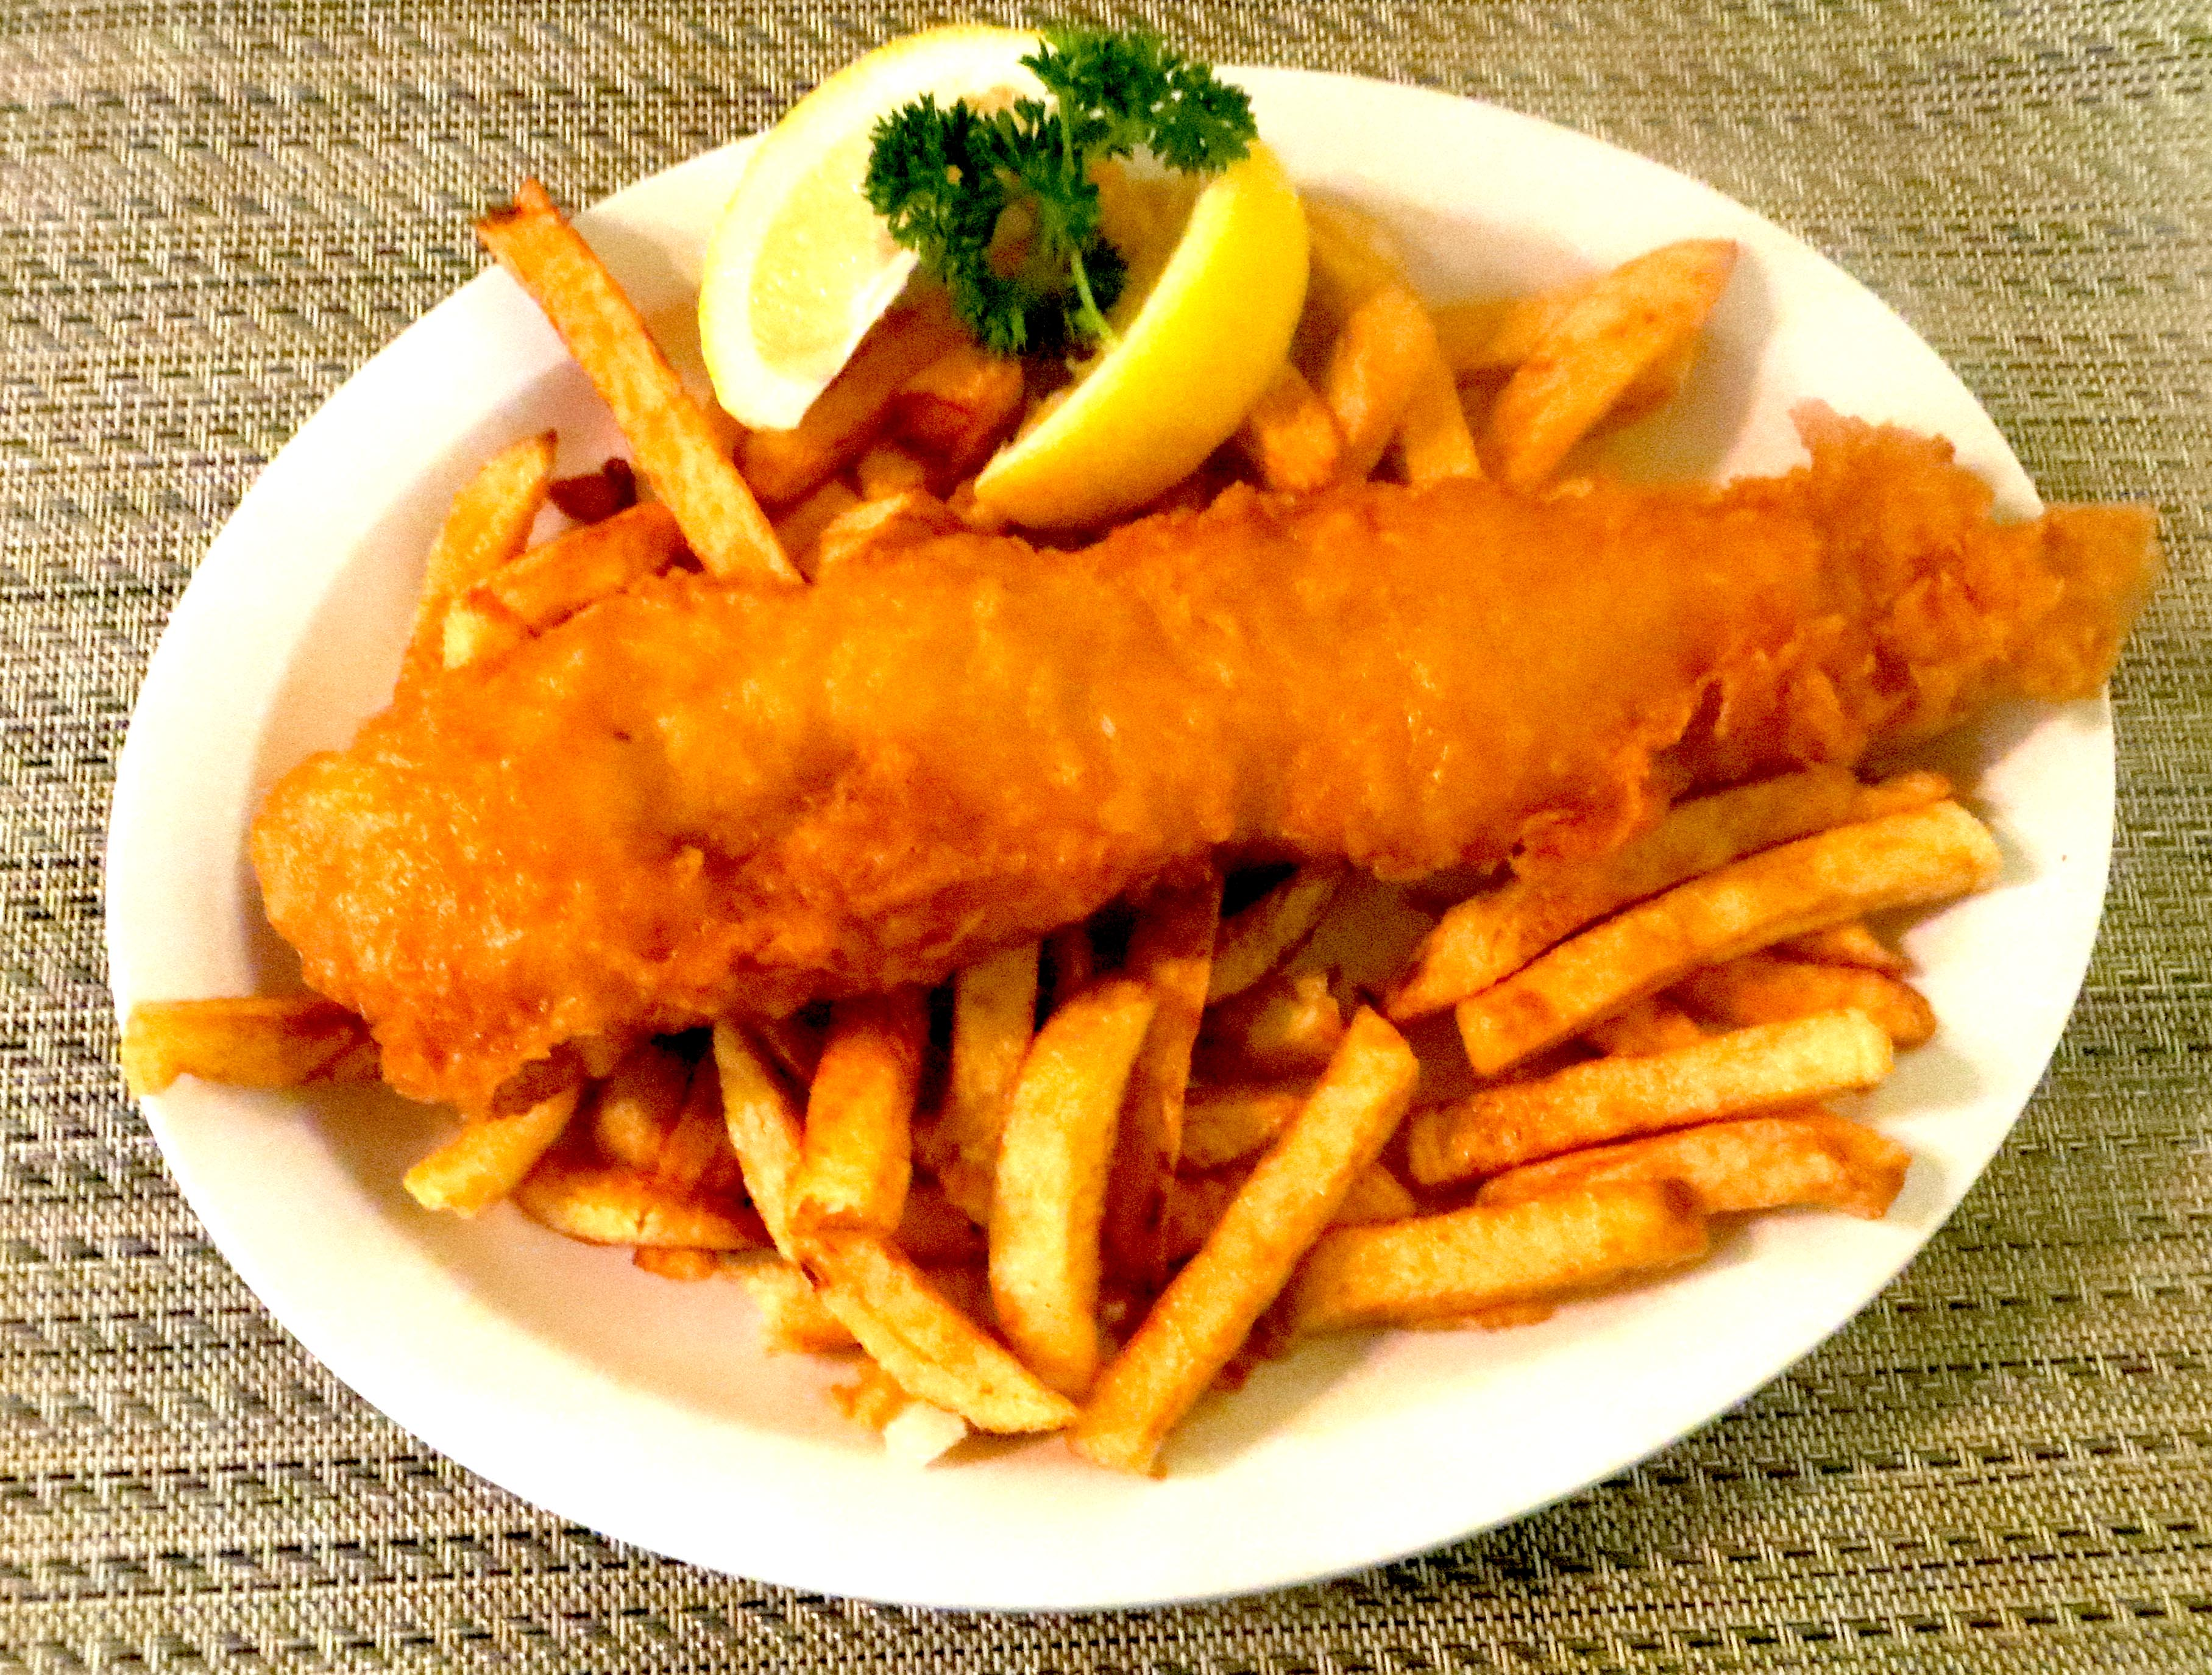 Queen's Fish And Chips